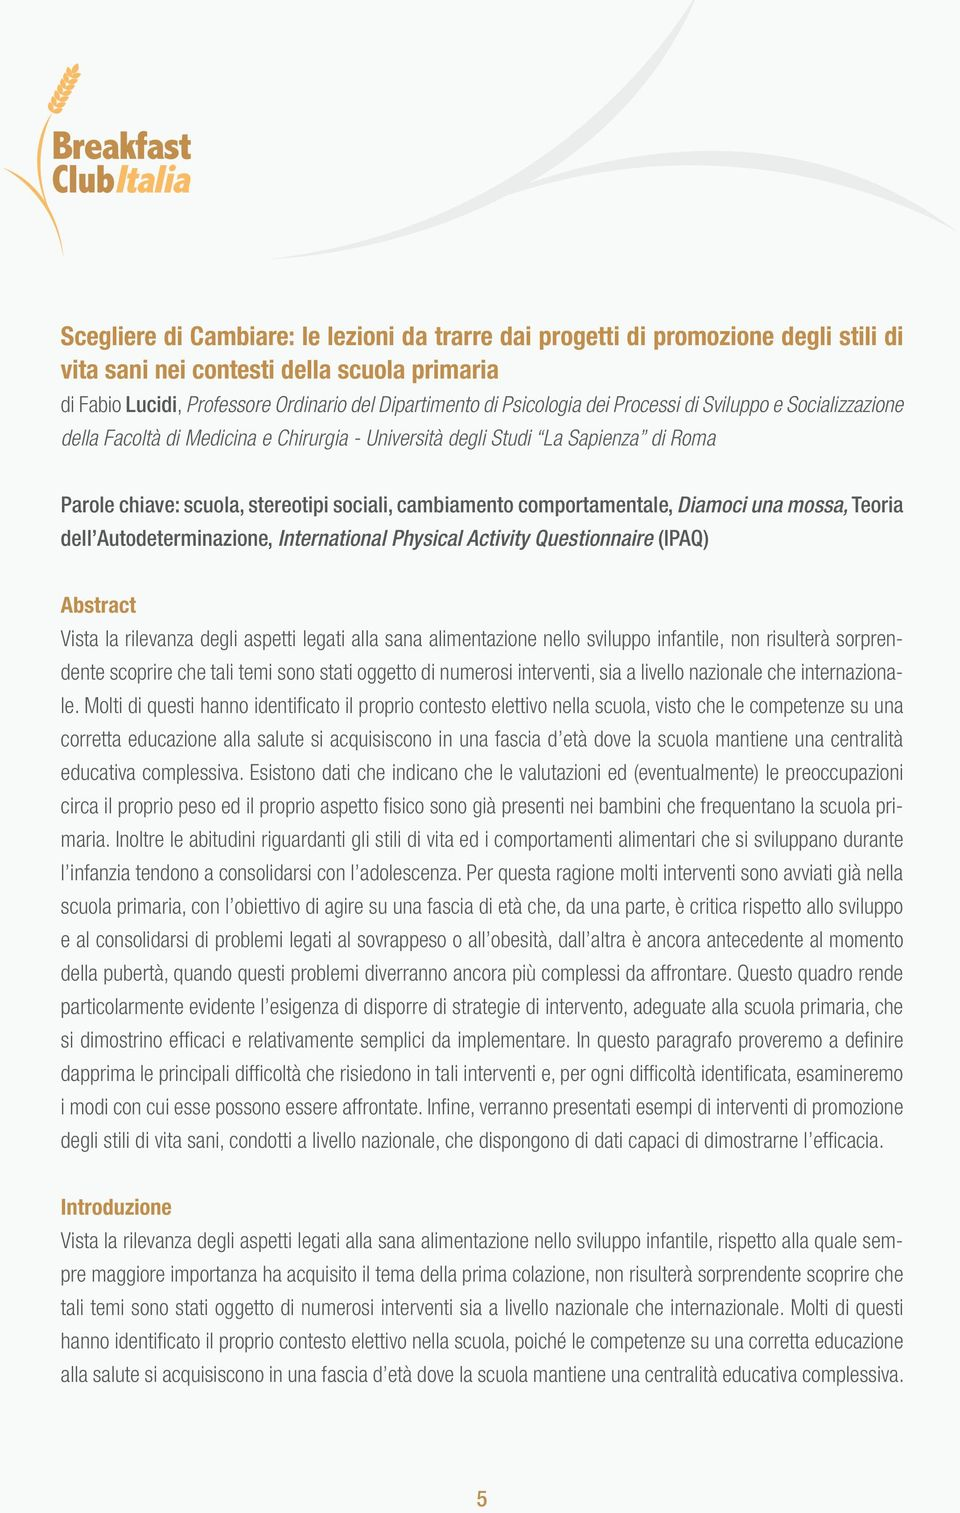 Diamoci una mossa, Teoria dell Autodeterminazione, International Physical Activity Questionnaire (IPAQ) Abstract Vista la rilevanza degli aspetti legati alla sana alimentazione nello sviluppo